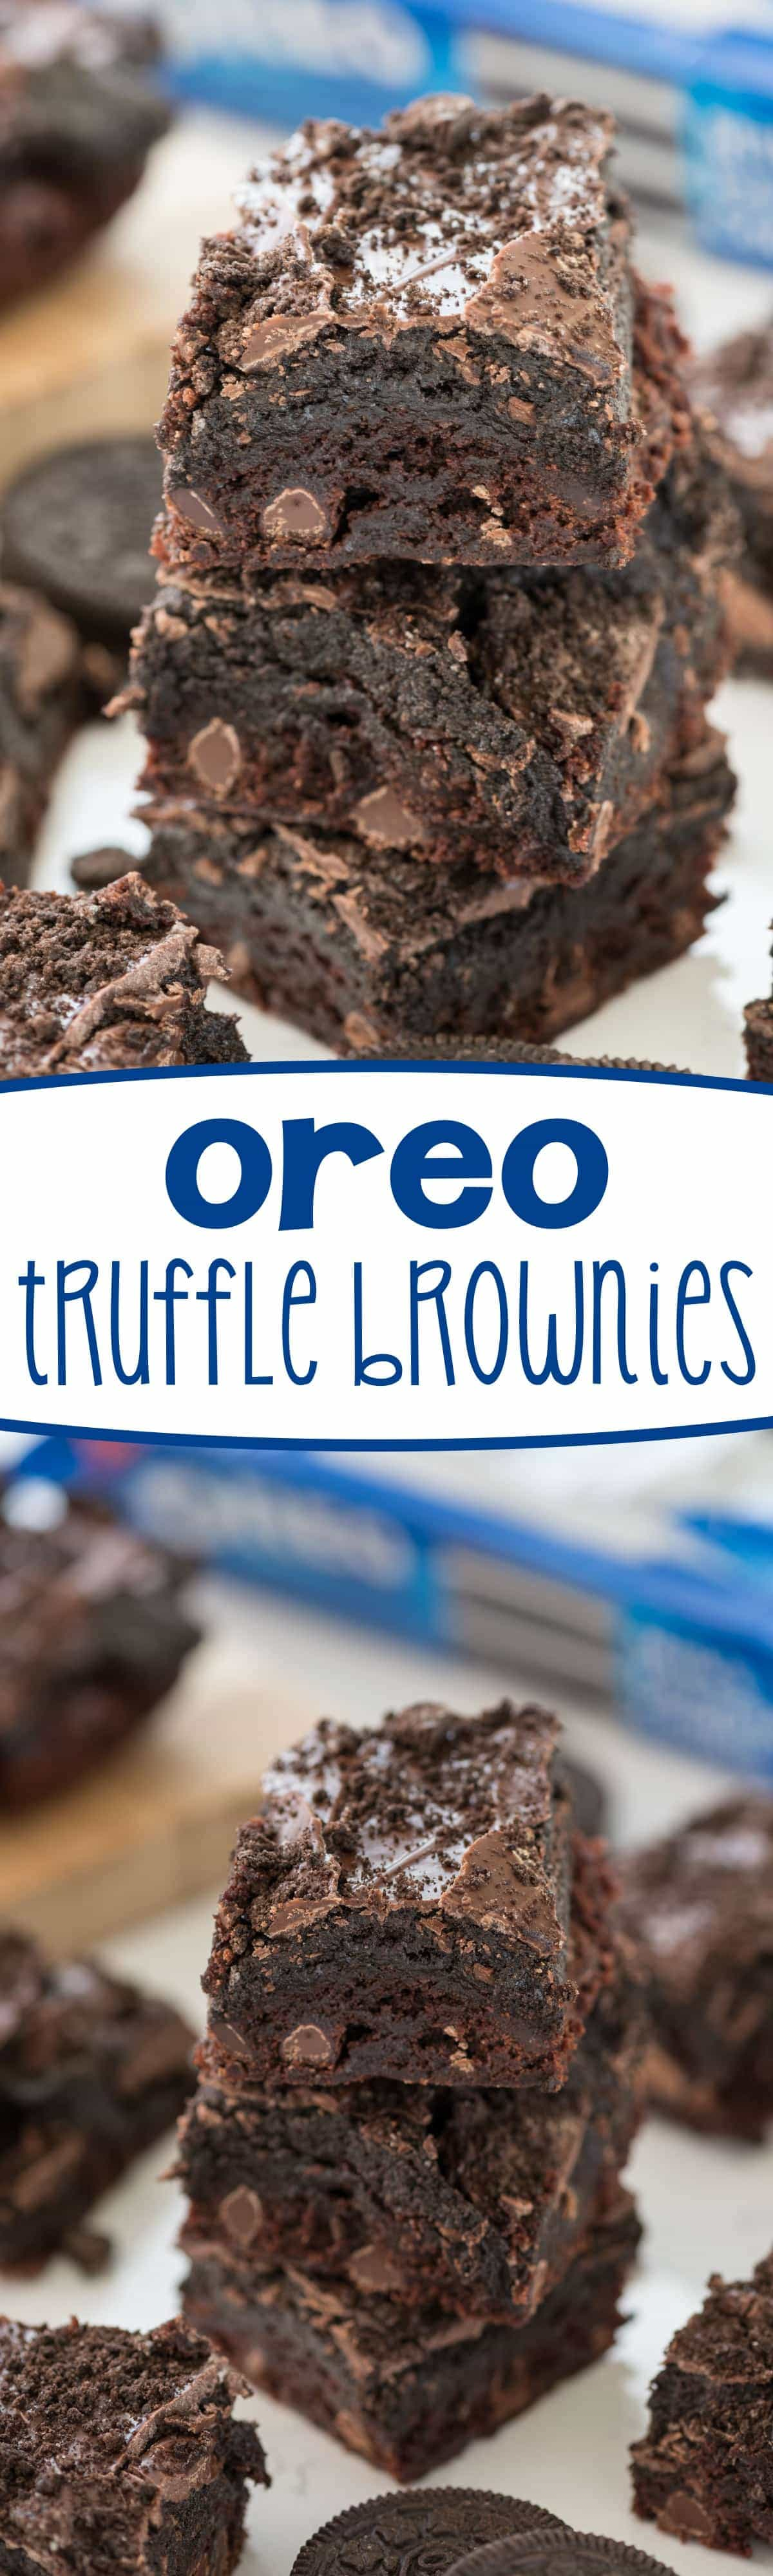 Oreo Truffle Brownies - this easy brownie recipe is the BEST! Don't roll the Oreo truffles, press them on top of brownies for a chocolatey fudgy treat!